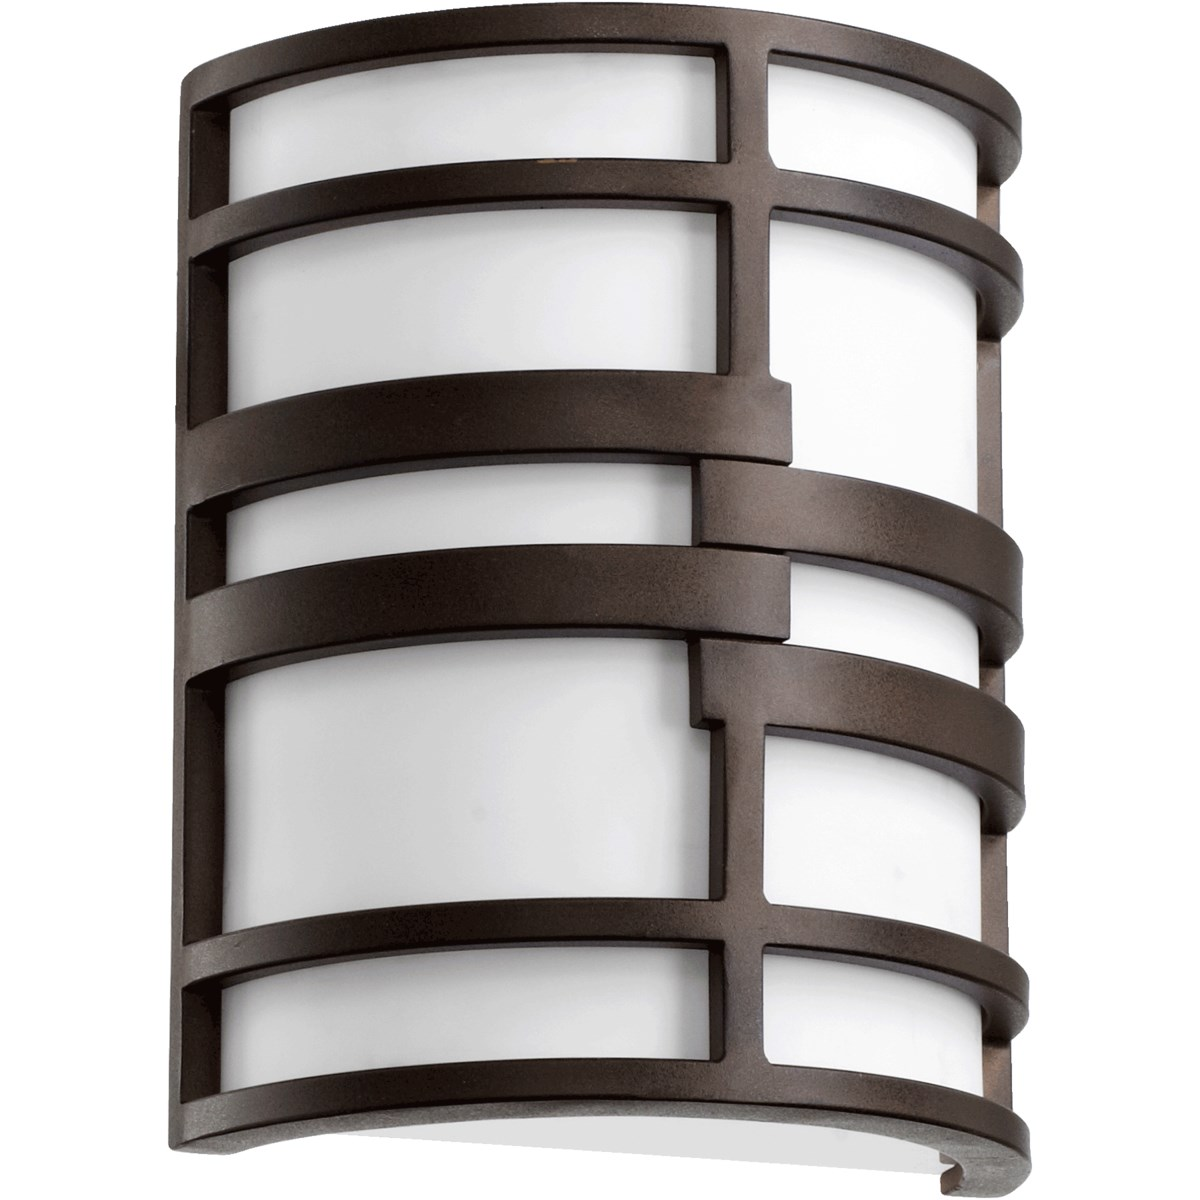 2 Light Transitional Oiled Bronze Wall Sconce